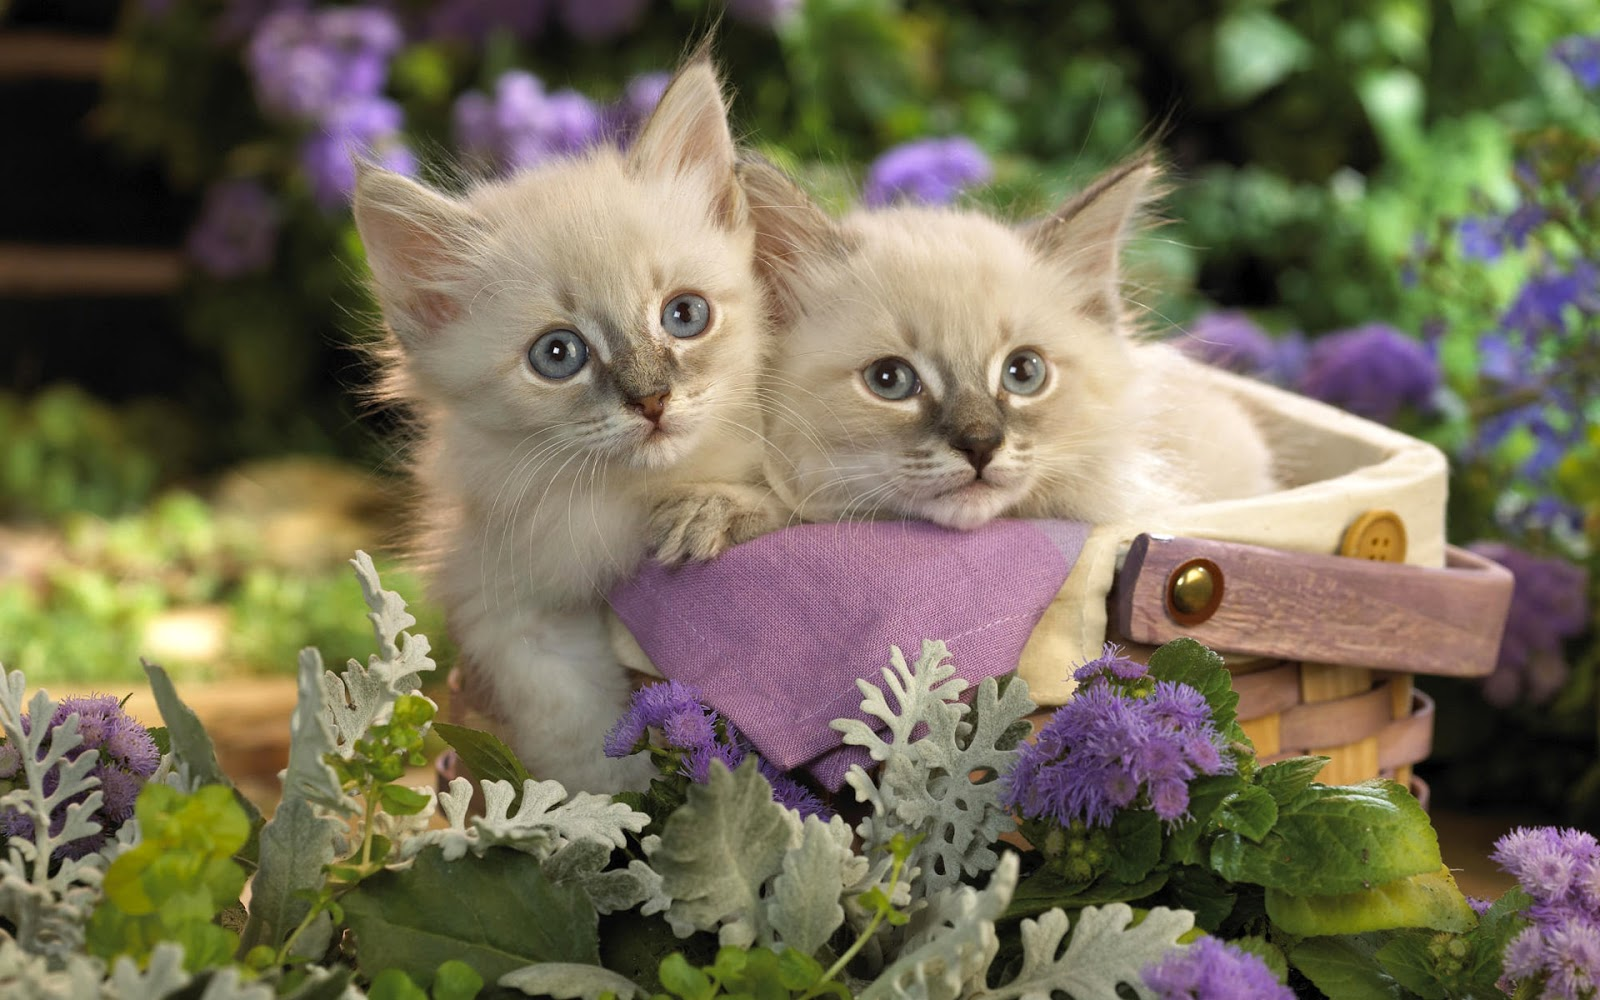 Lovely wallpapers cute animals wallpapers 2012 - Kitten wallpaper hd ...